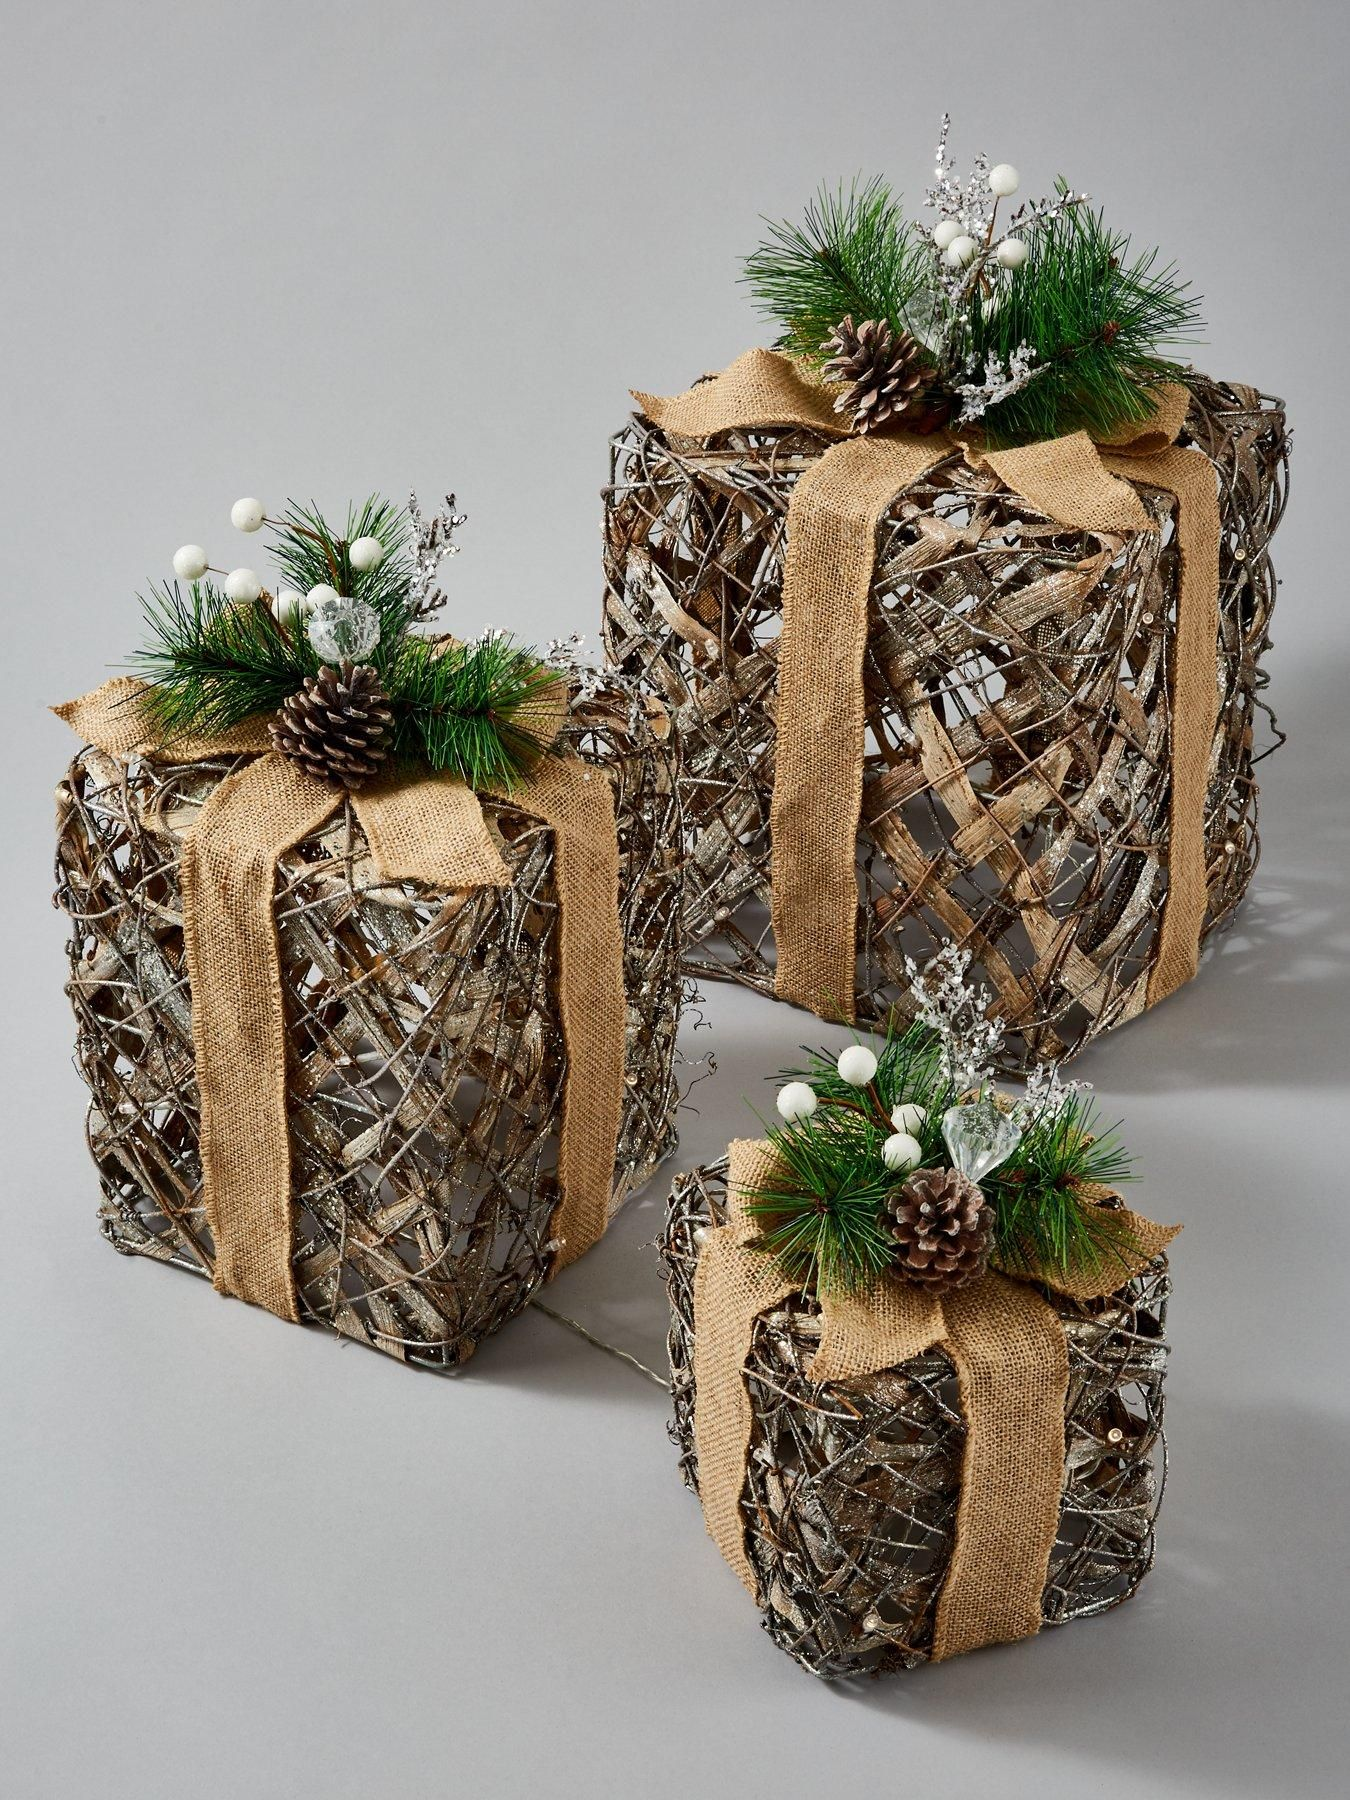 Lit and Frosted Rattan Gift Box Christmas Decorations (Set